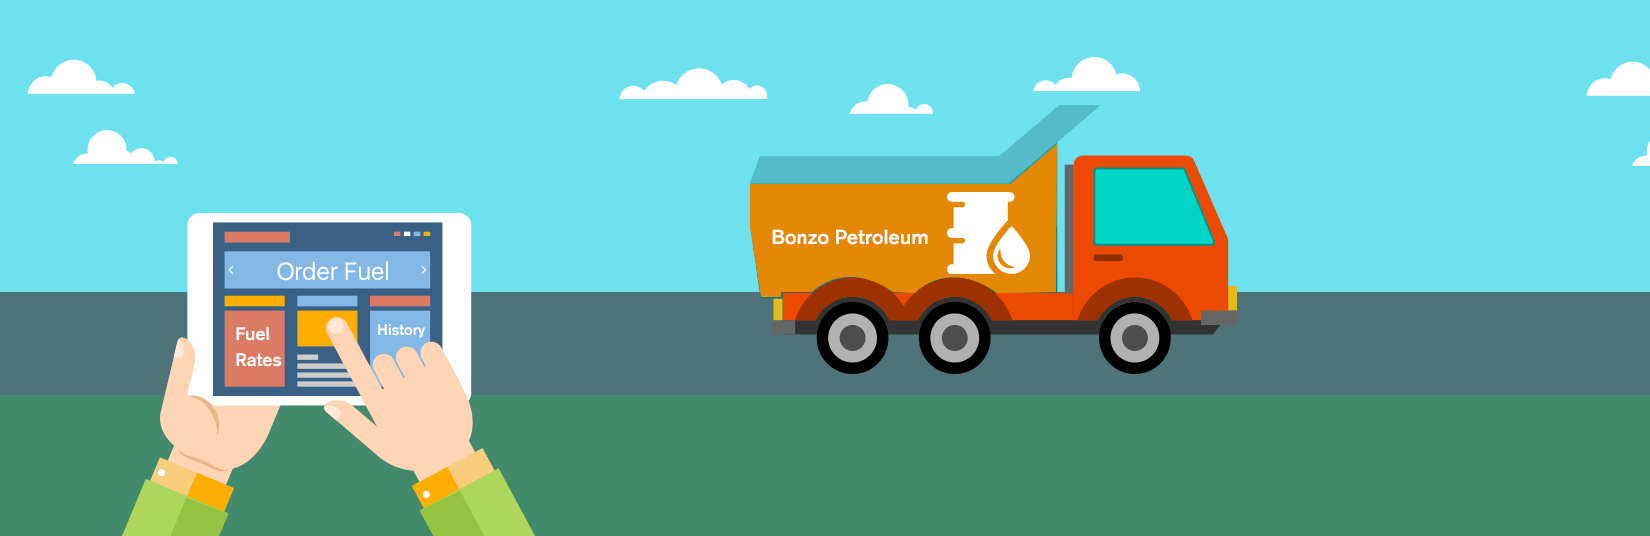 Now Get On-Demand Mobile Apps to Order Fuel Online